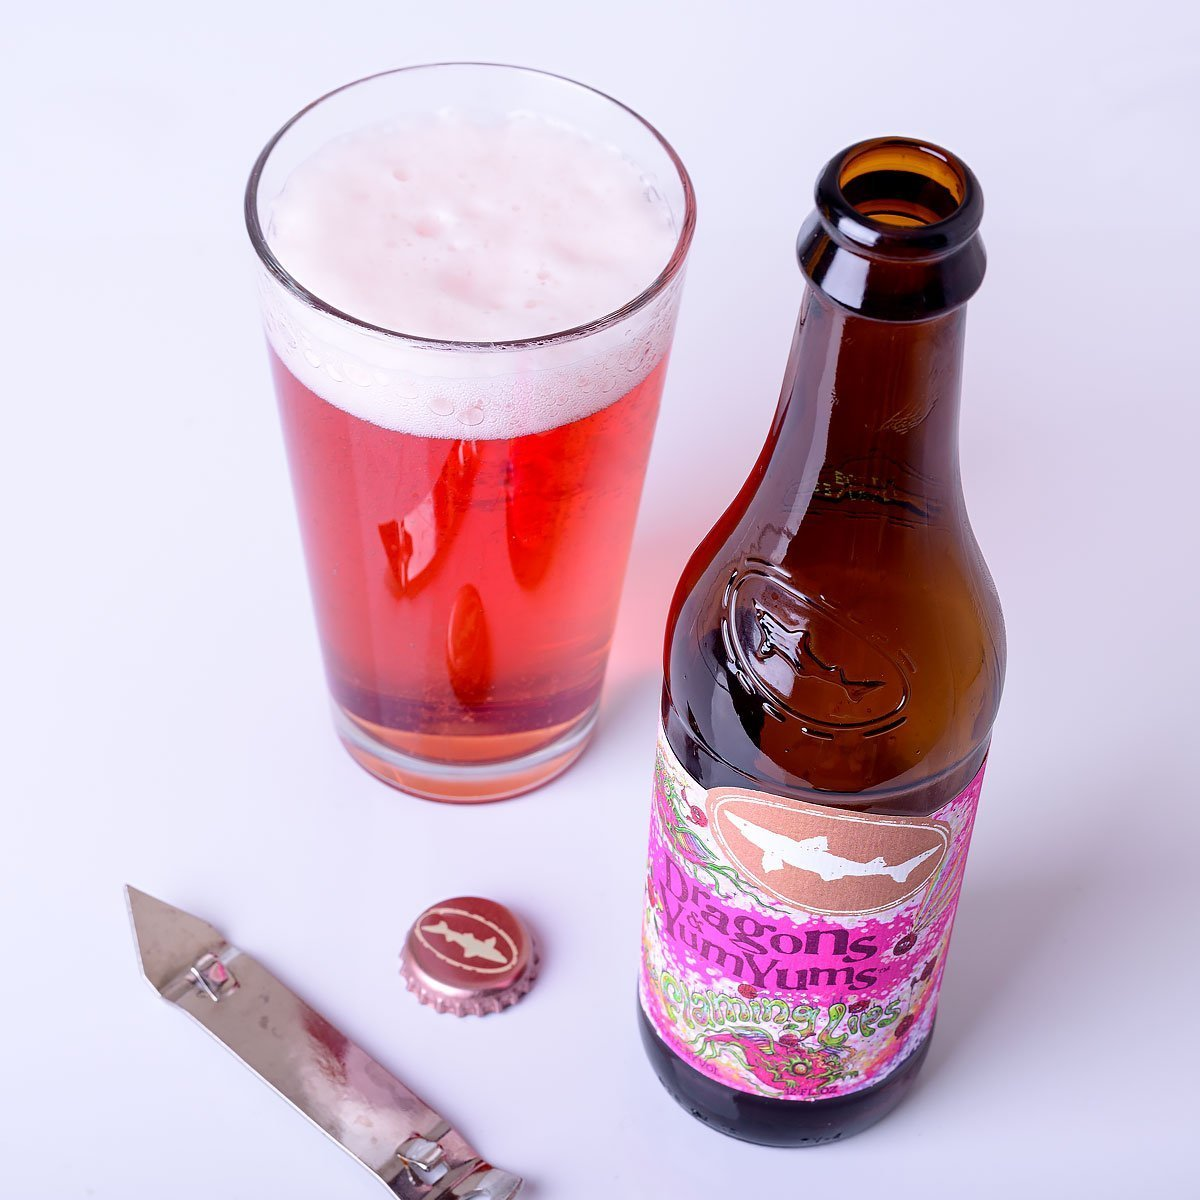 Dragons & YumYums is an American Pale Ale by Dogfish Head Craft Brewery that blends sweet and tart tropical fruit with pine, resin, and bready malt.